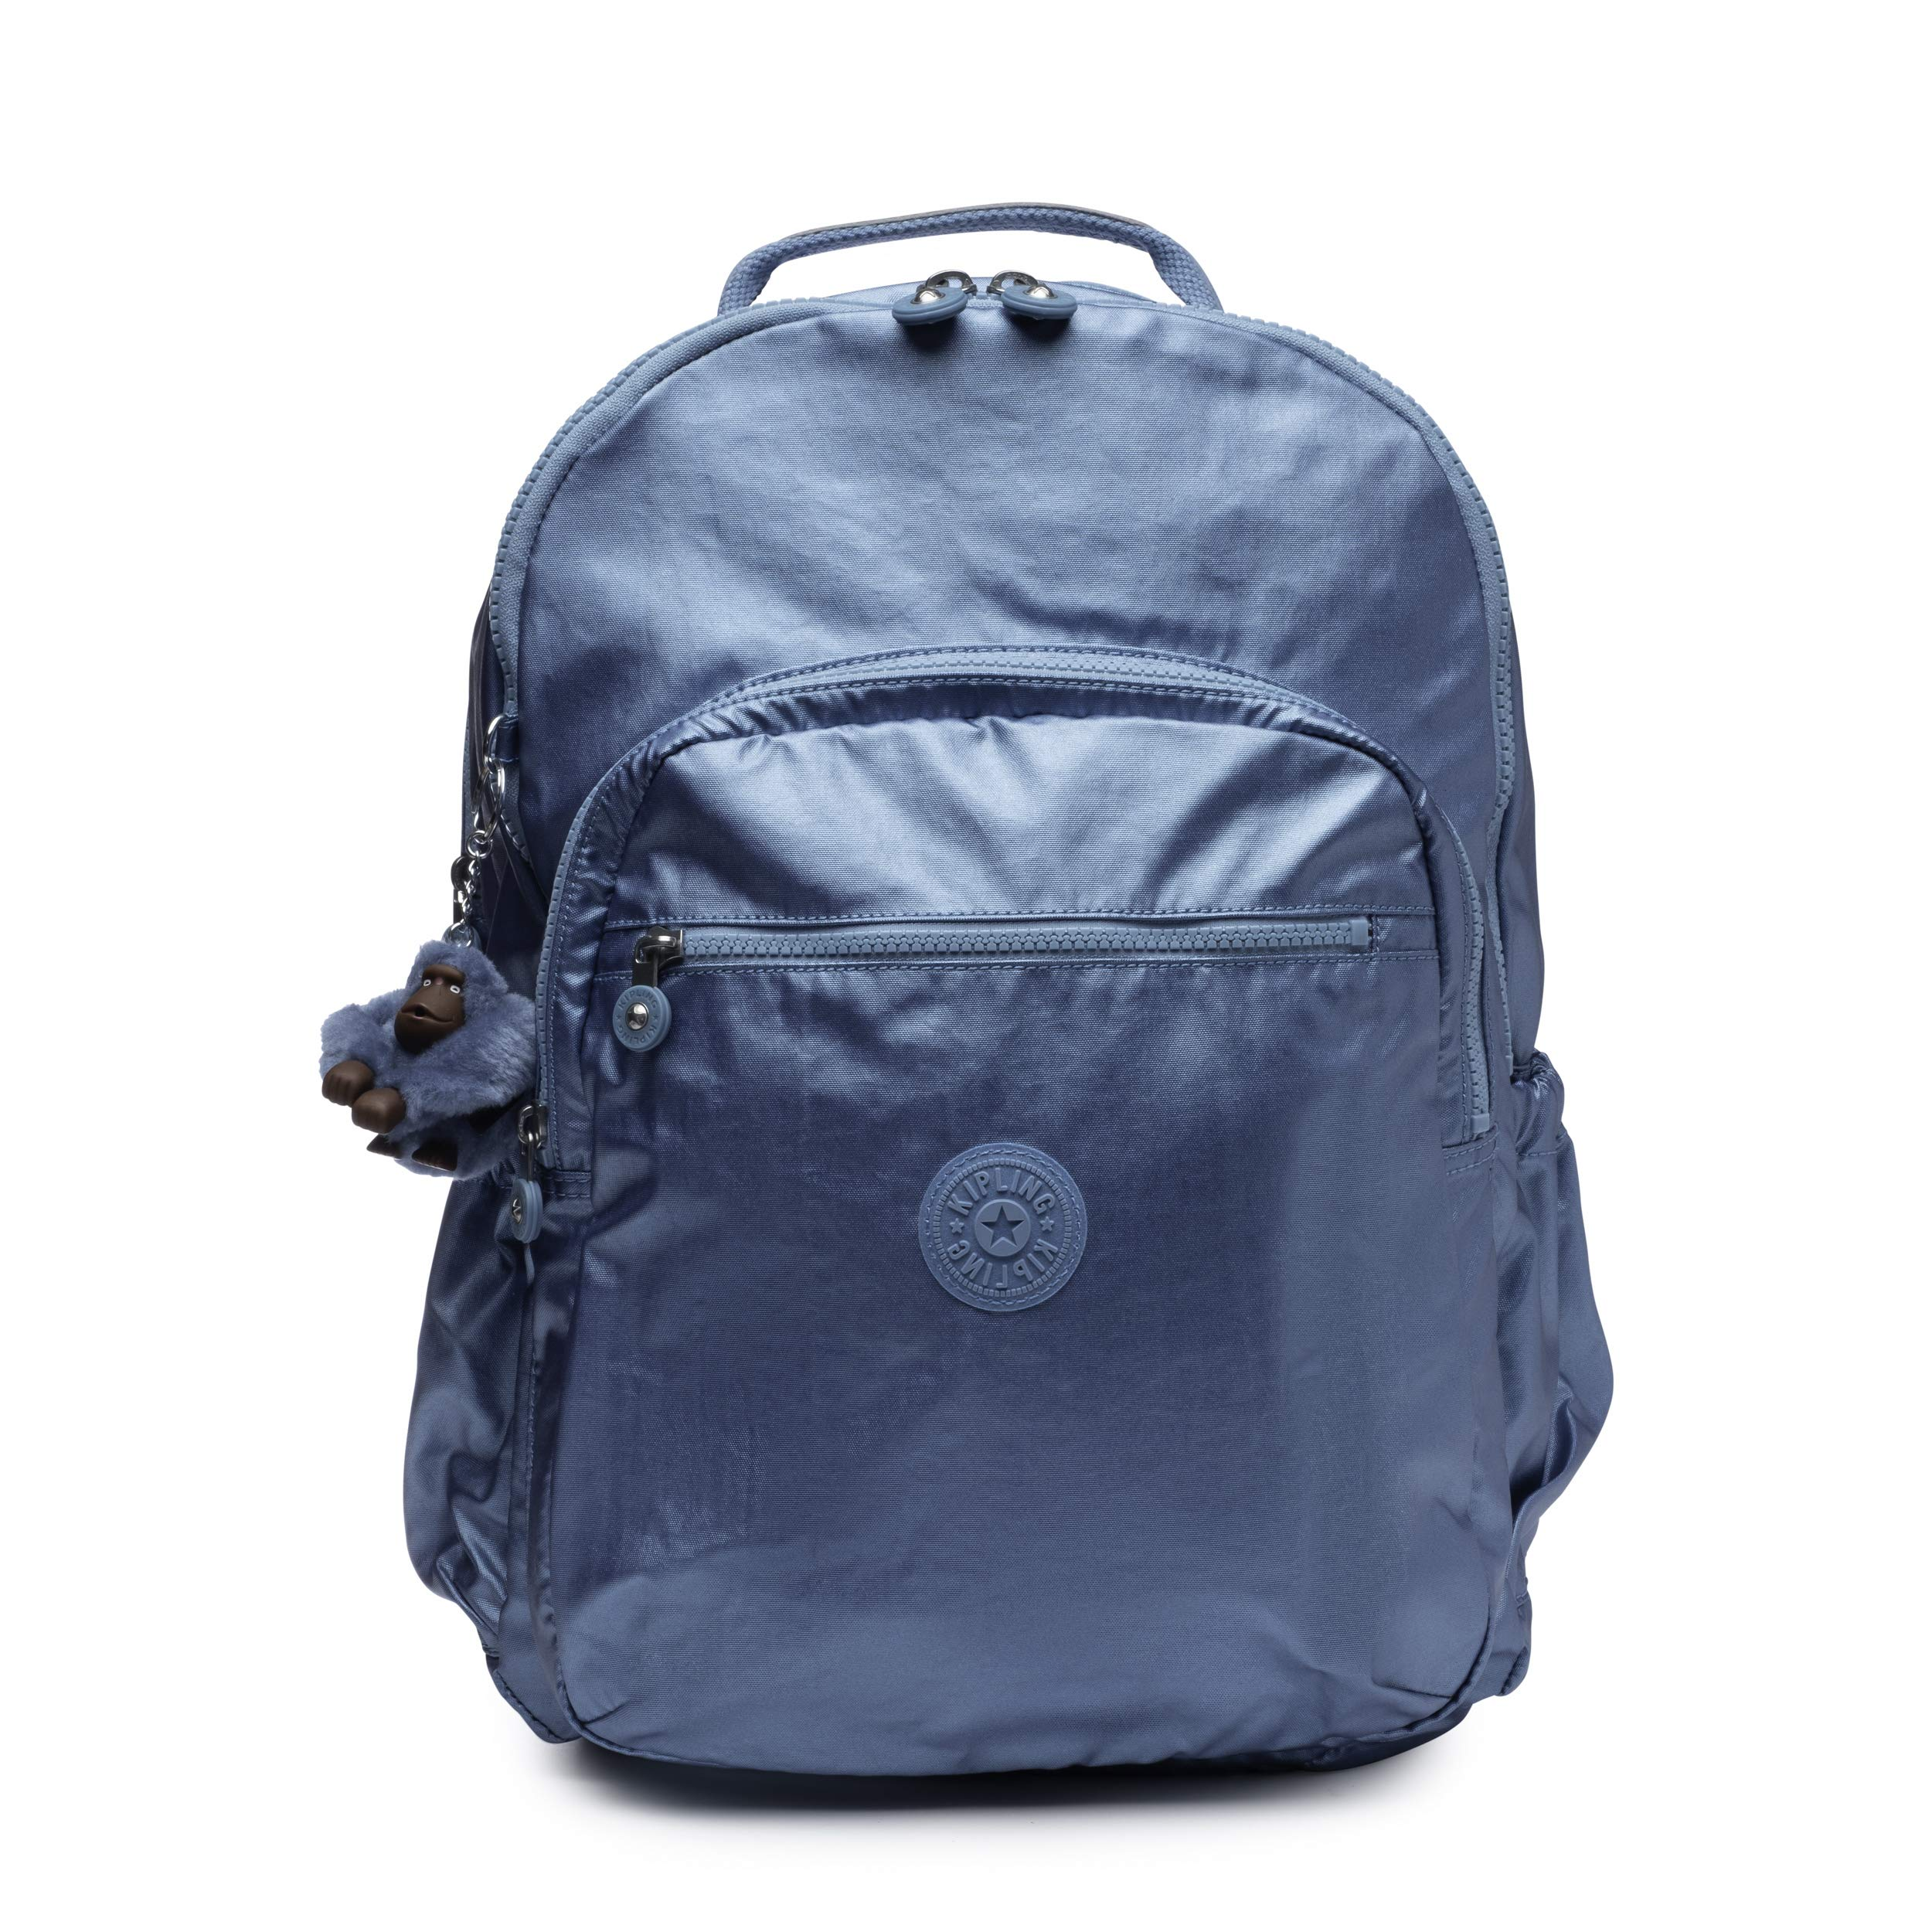 Kipling Seoul Go XL Laptop, Padded, Adjustable Backpack Straps, Zip Closure, turkish tile metallic